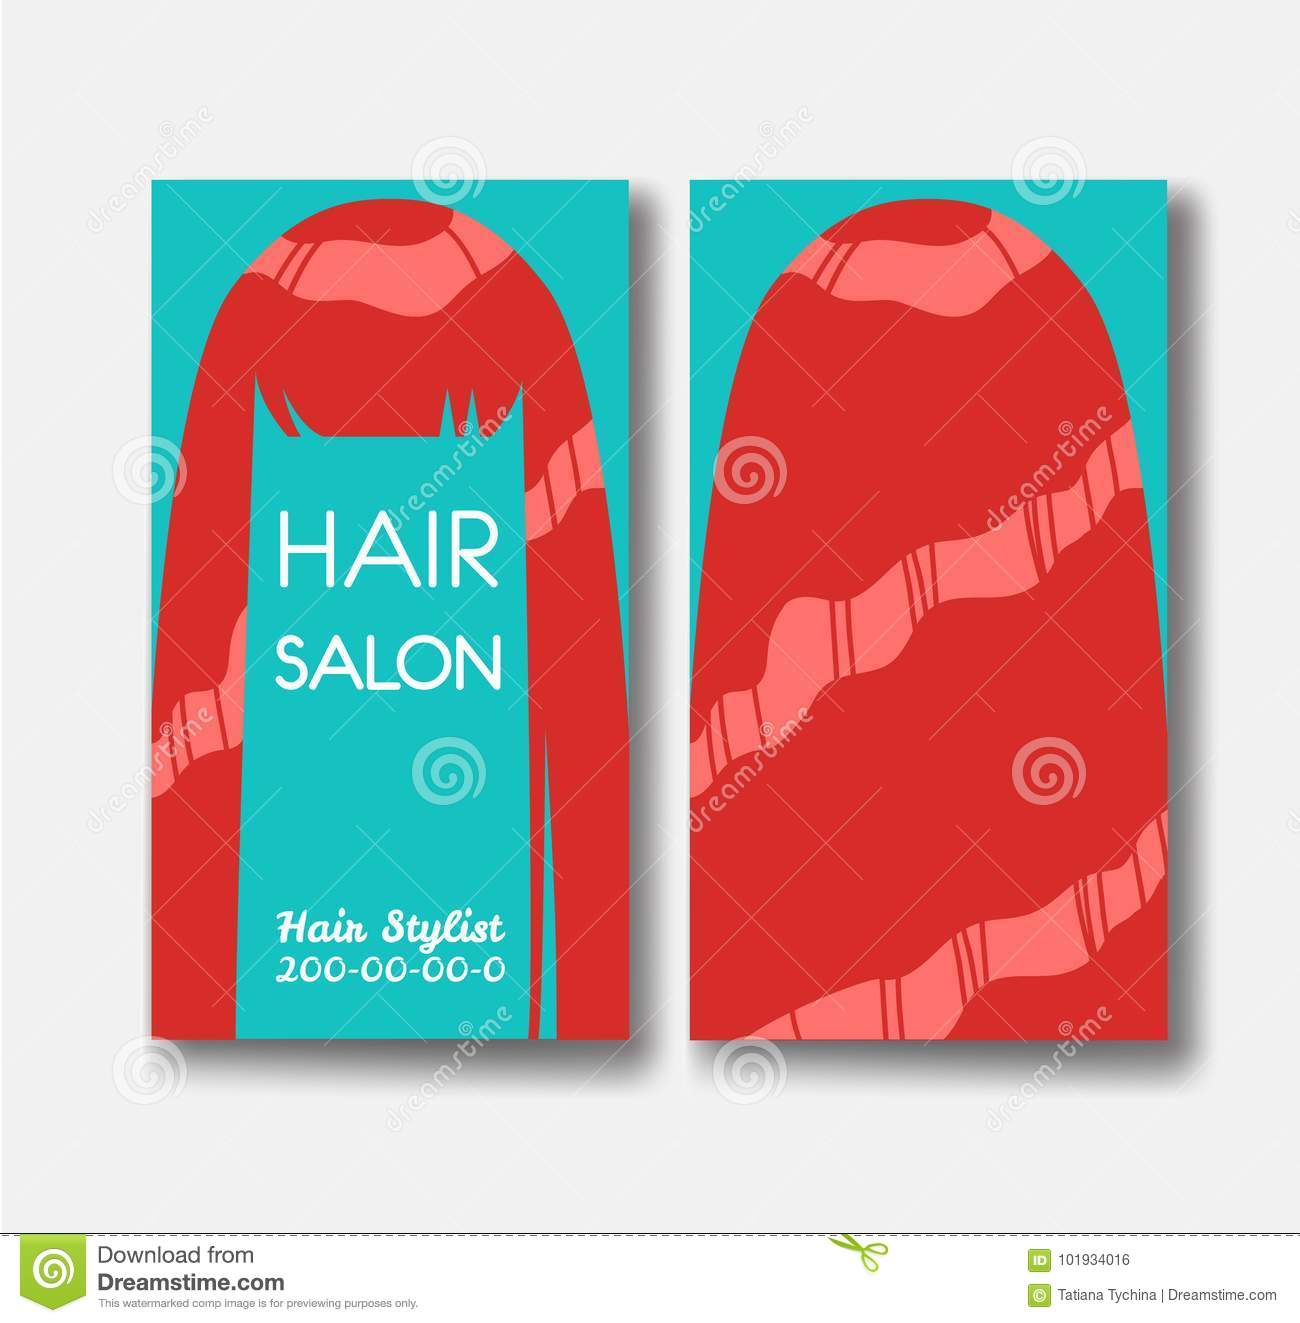 Hair salon business card templates with red hair on green backgr download hair salon business card templates with red hair on green backgr stock vector illustration accmission Choice Image